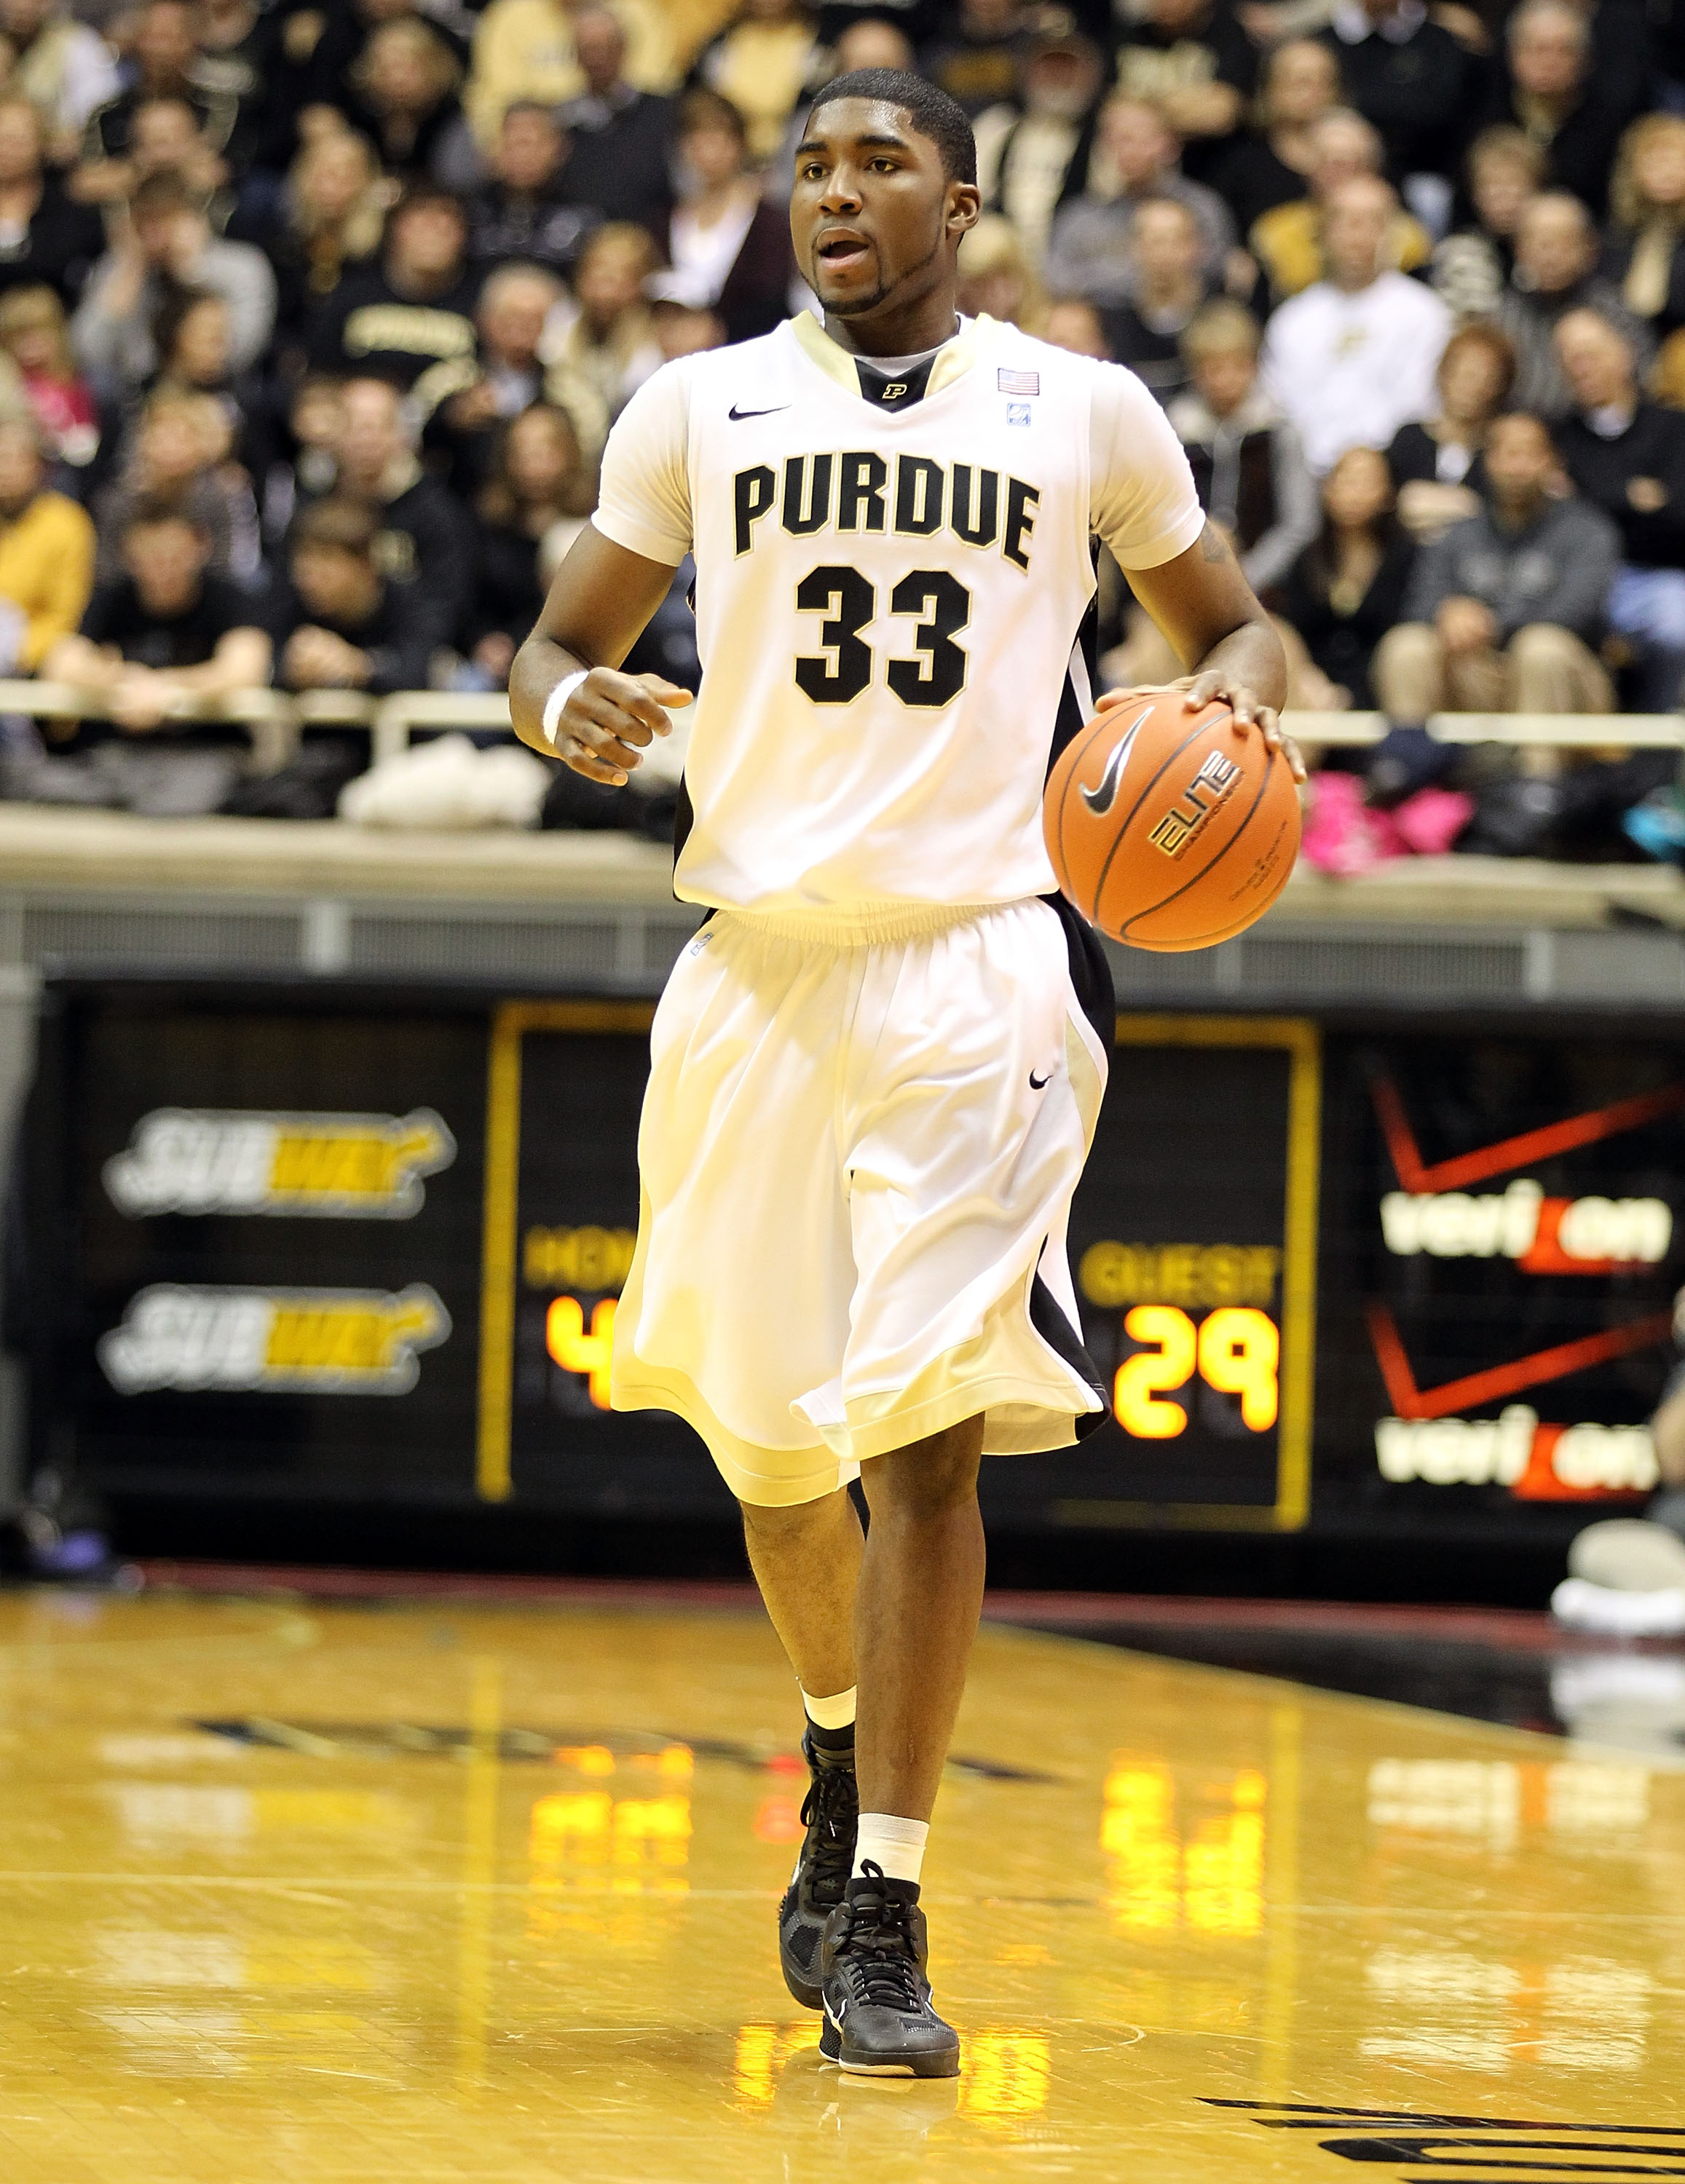 WEST LAFAYETTE, IN - JANUARY 09:  E' Twaun Moore #33 of the Purdue Boilermakers brings the ball up court against the Iowa Hawkeyes during the Big Ten Conference game at Mackey Arena on January 9, 2011 in West Lafayette, Indiana. Purdue won 75-52.  (Photo